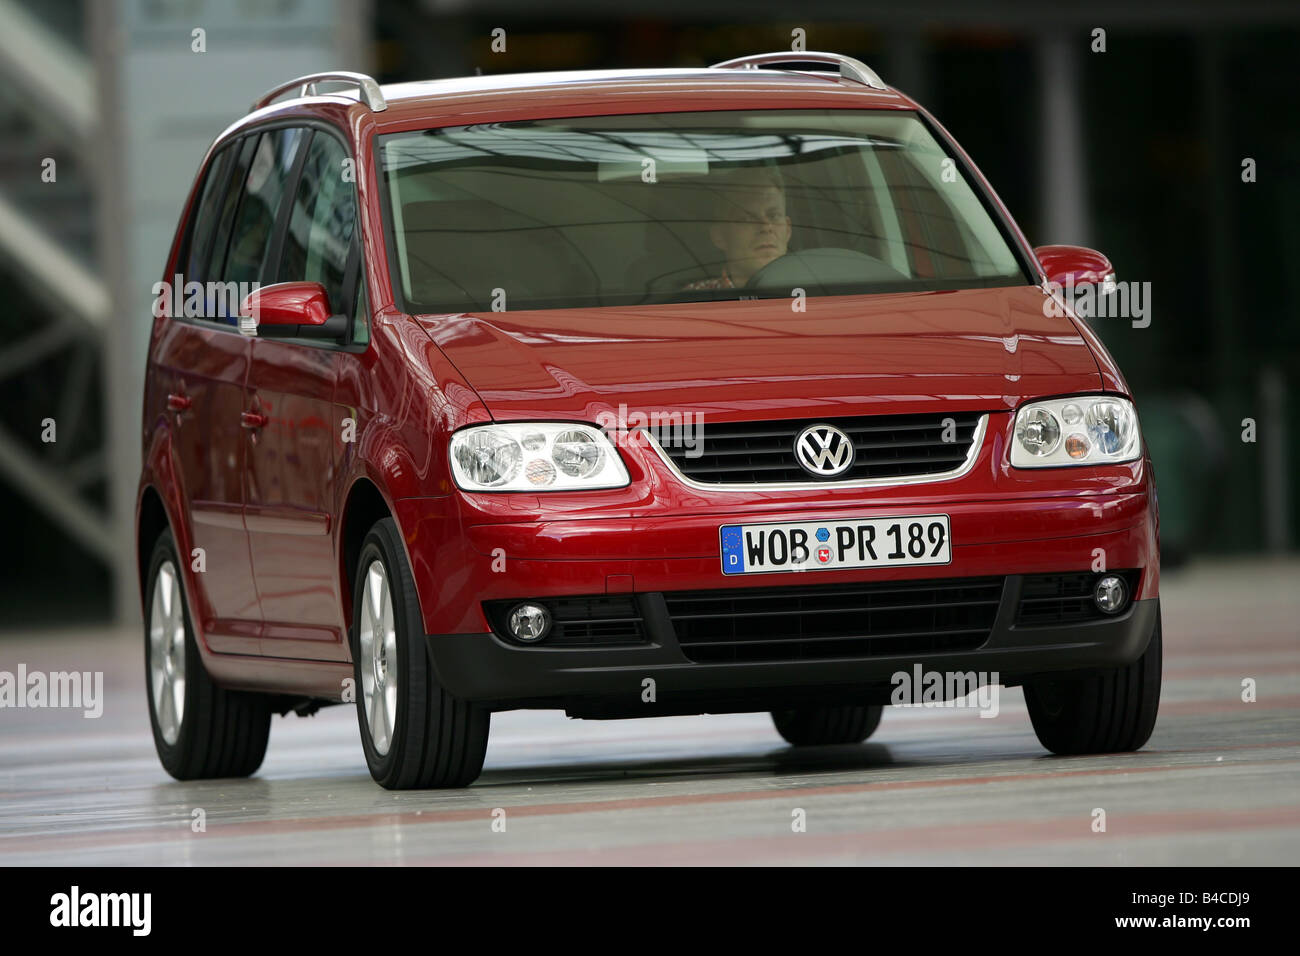 car vw volkswagen touran 2 0 tdi model year 2005 red van stock photo royalty free image. Black Bedroom Furniture Sets. Home Design Ideas